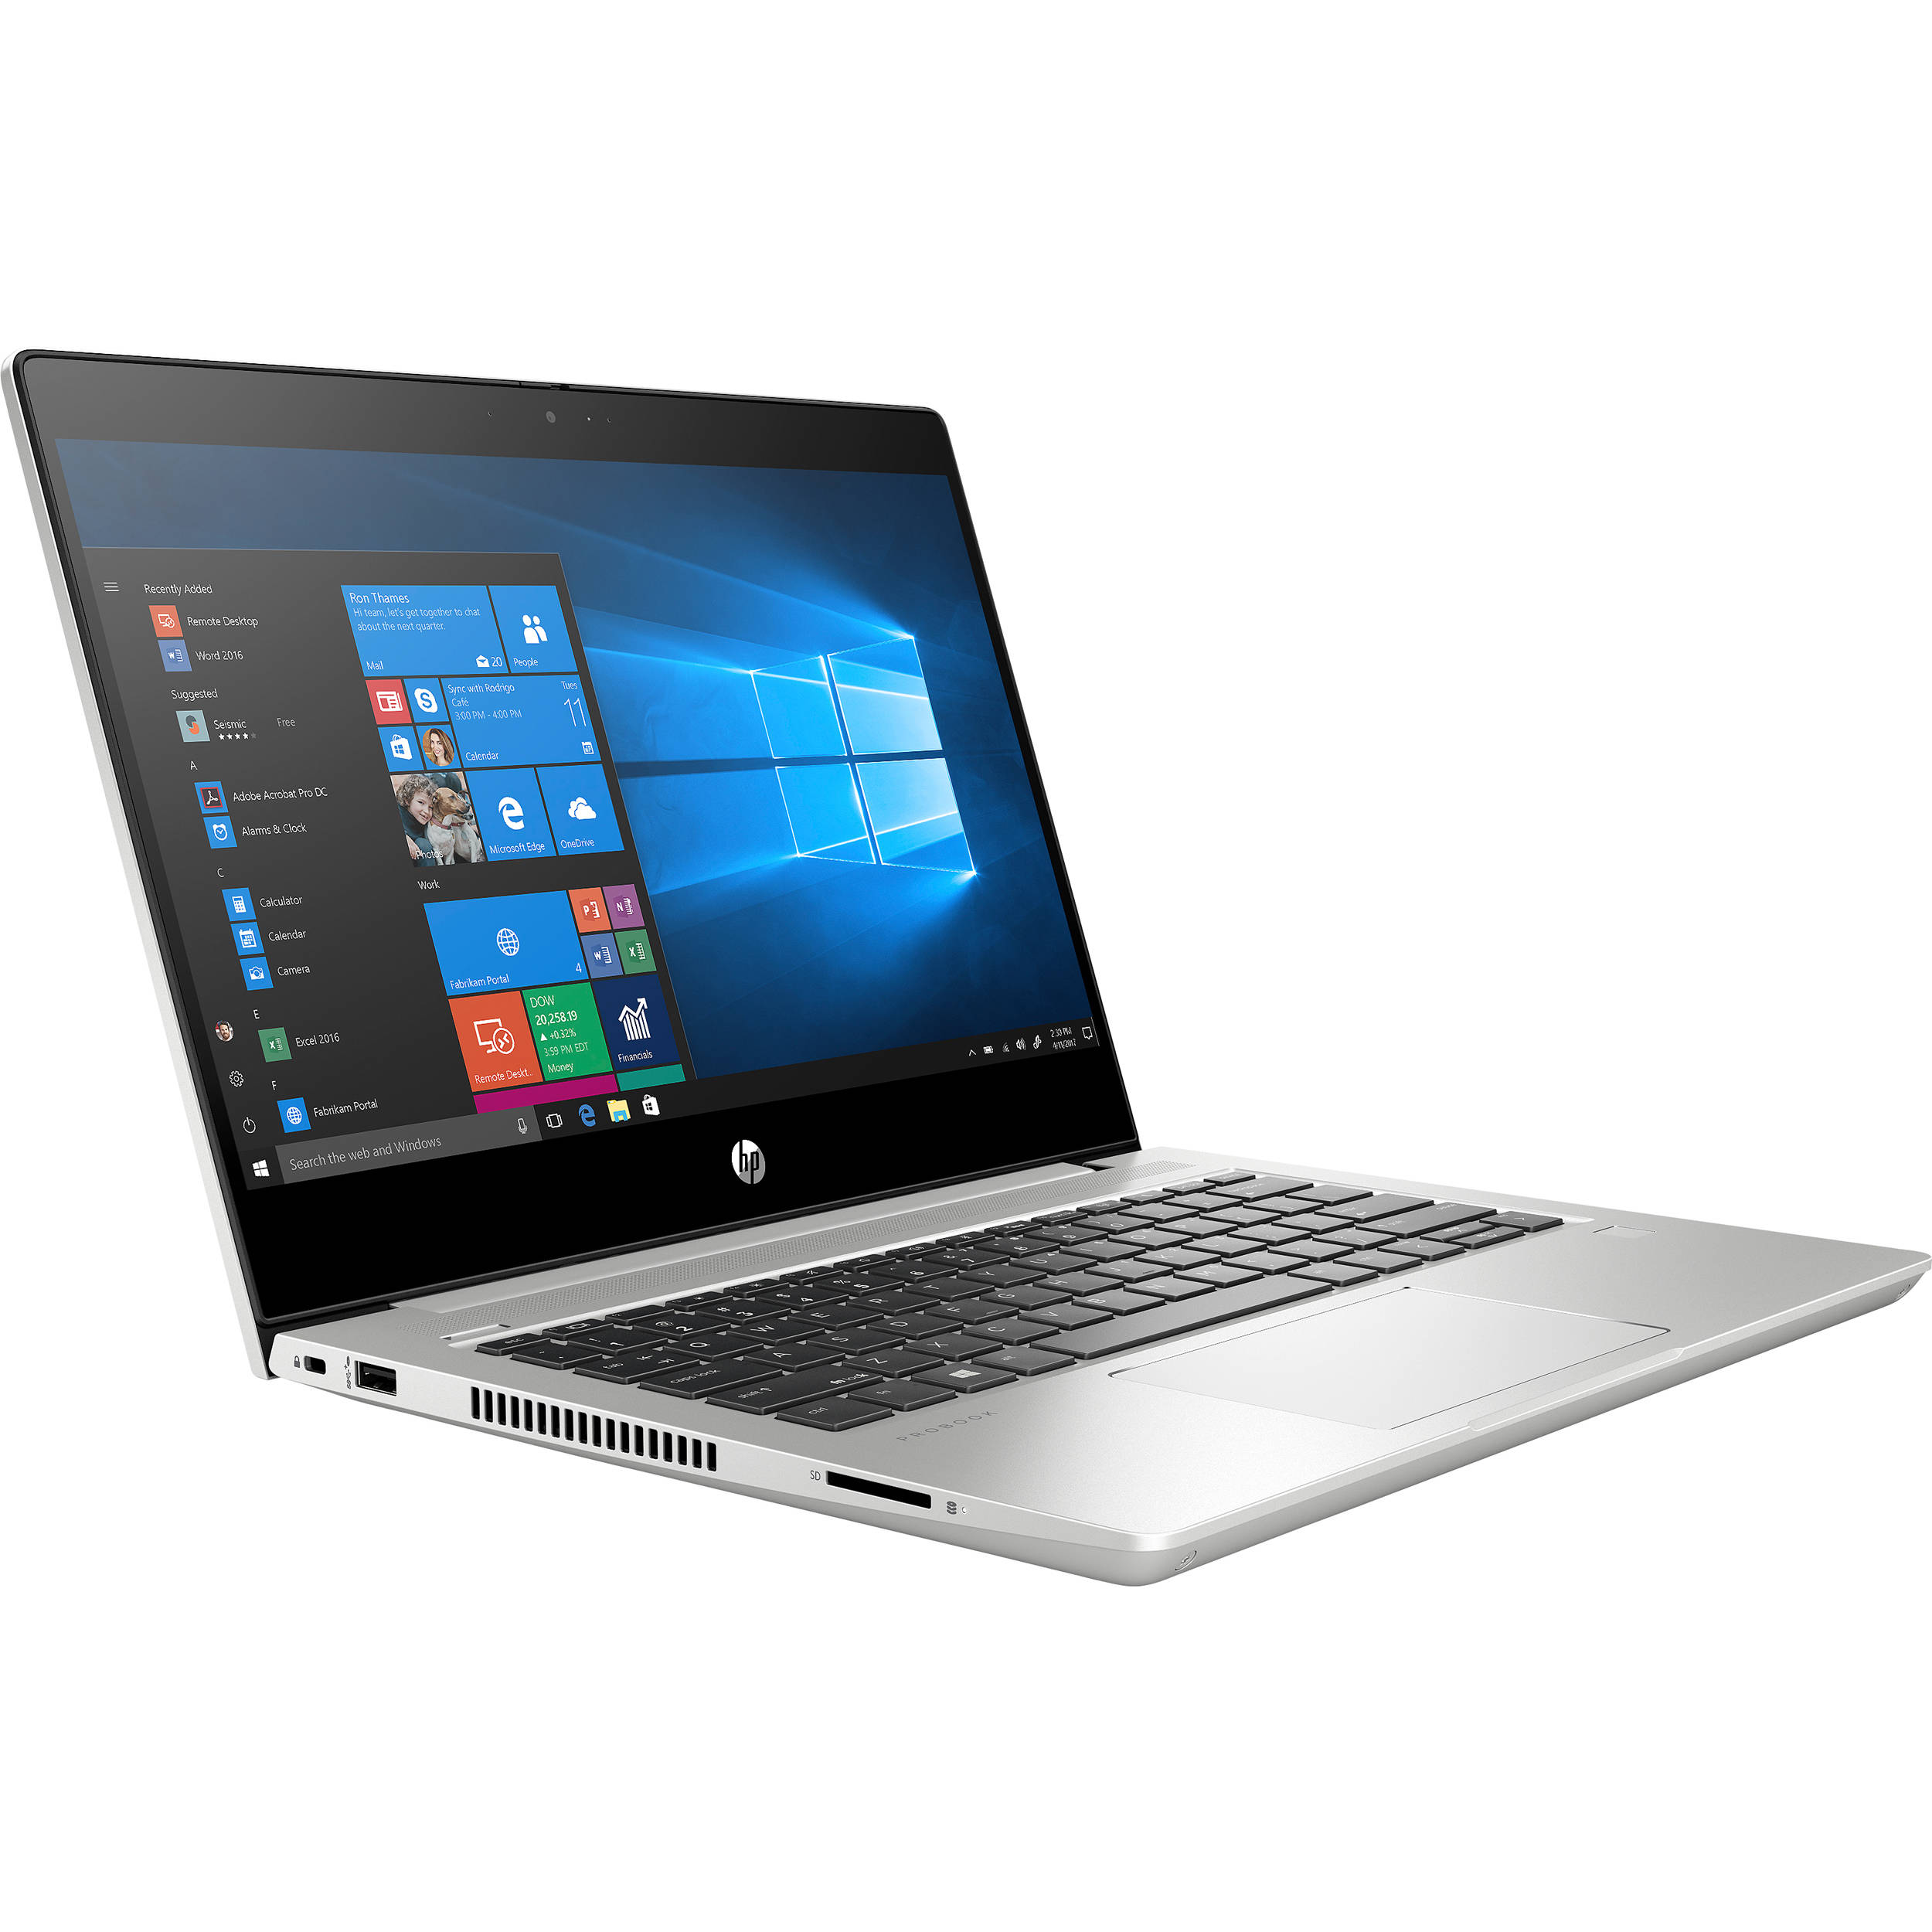 HP ProBook 430 G7 13.3' FHD IPS i5-10210U 8GB 256GB SSD WIN10 PRO 4G LTE UHDGraphics USB-C HDMI Backlit 3CELL 1.49kg  W10P Notebook (9UQ39PA)